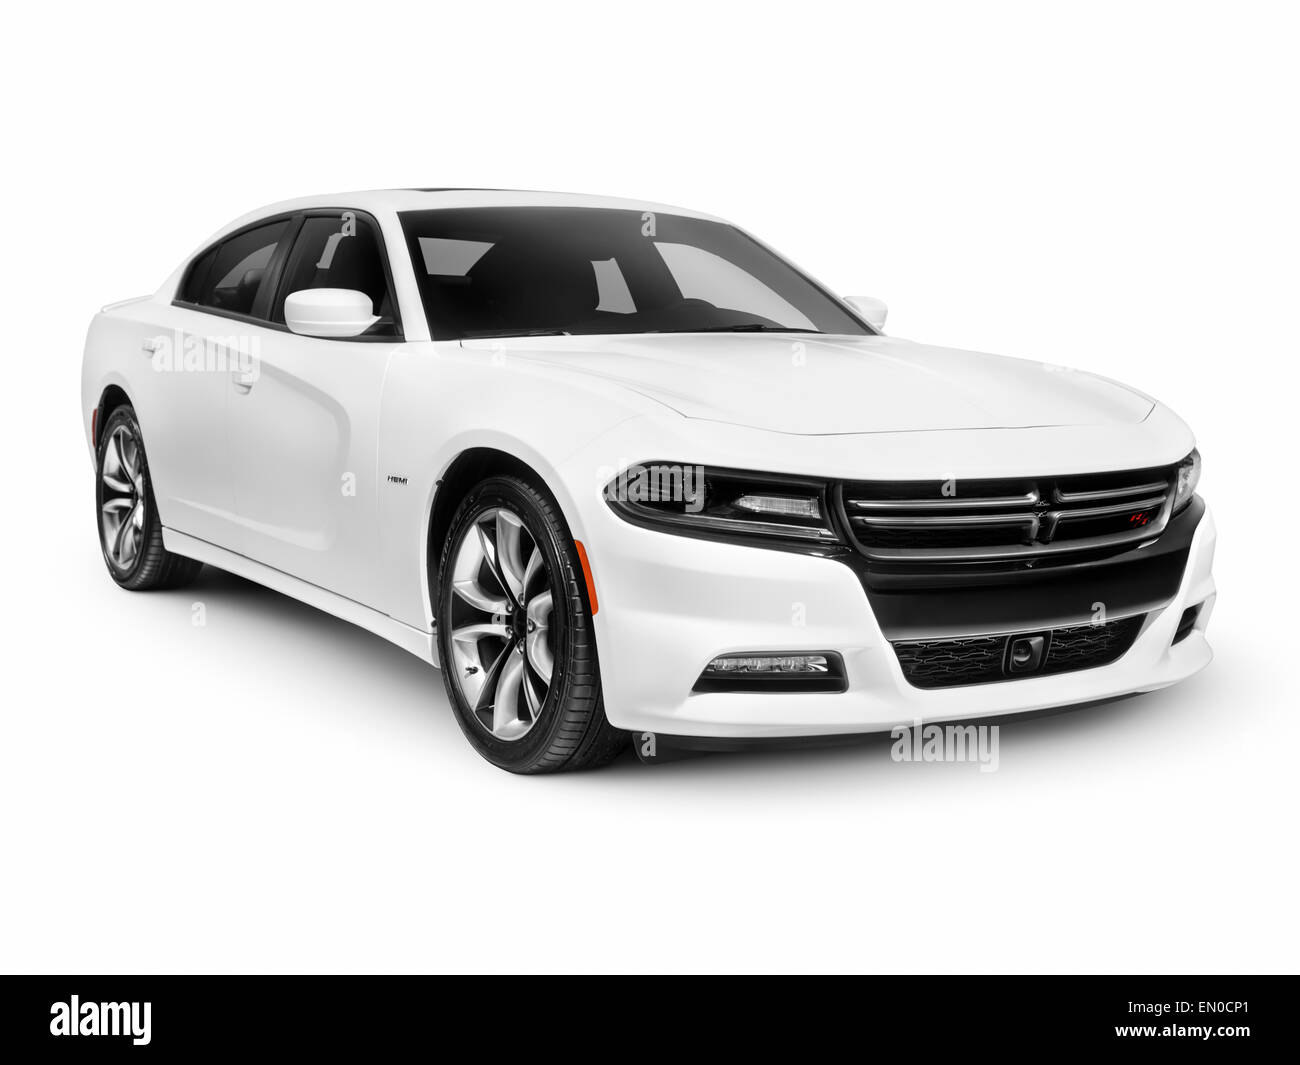 white 2015 dodge charger rt road and track sports car isolated on stock photo royalty free. Black Bedroom Furniture Sets. Home Design Ideas